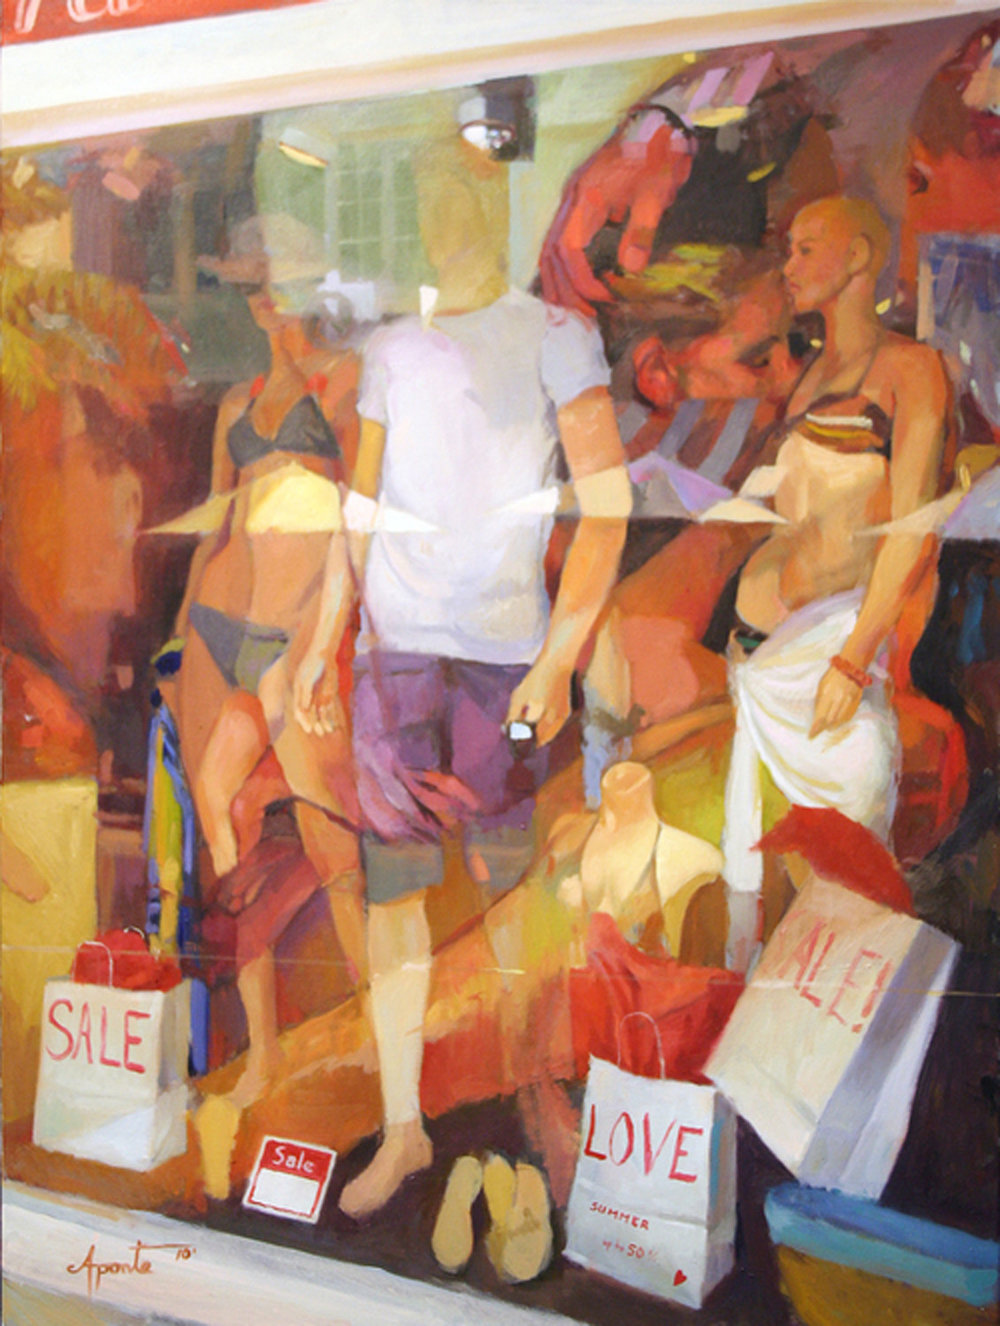 Love for Sale - Jason Aponte.jpg